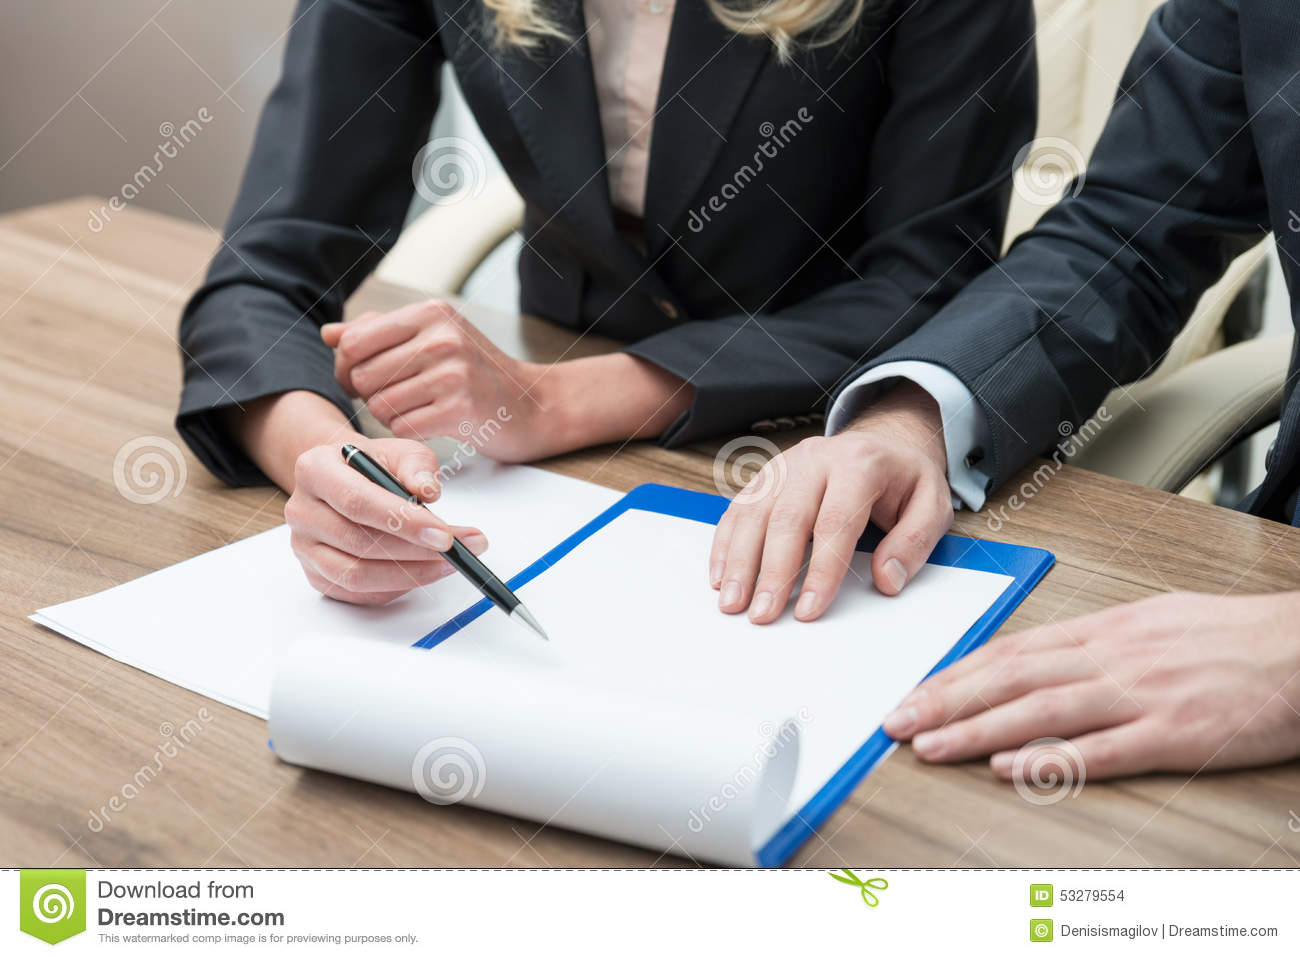 Close up hands of working process. Legal contract negotiation.